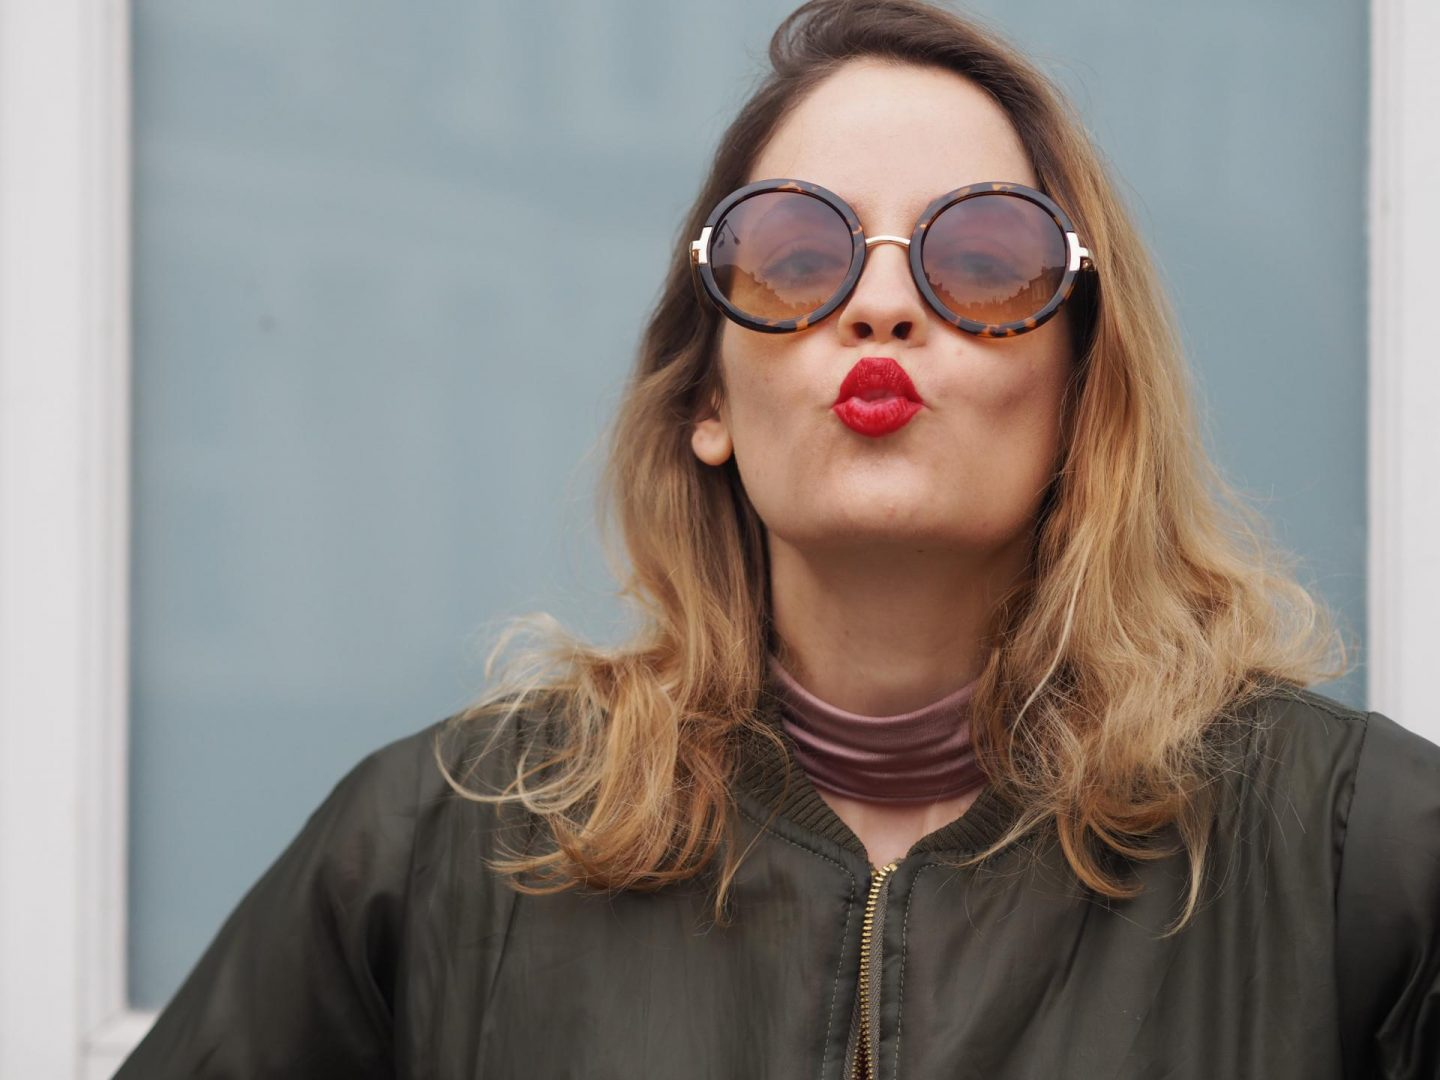 Topshop sunglasses and khaki bomber jacket from Trendeo